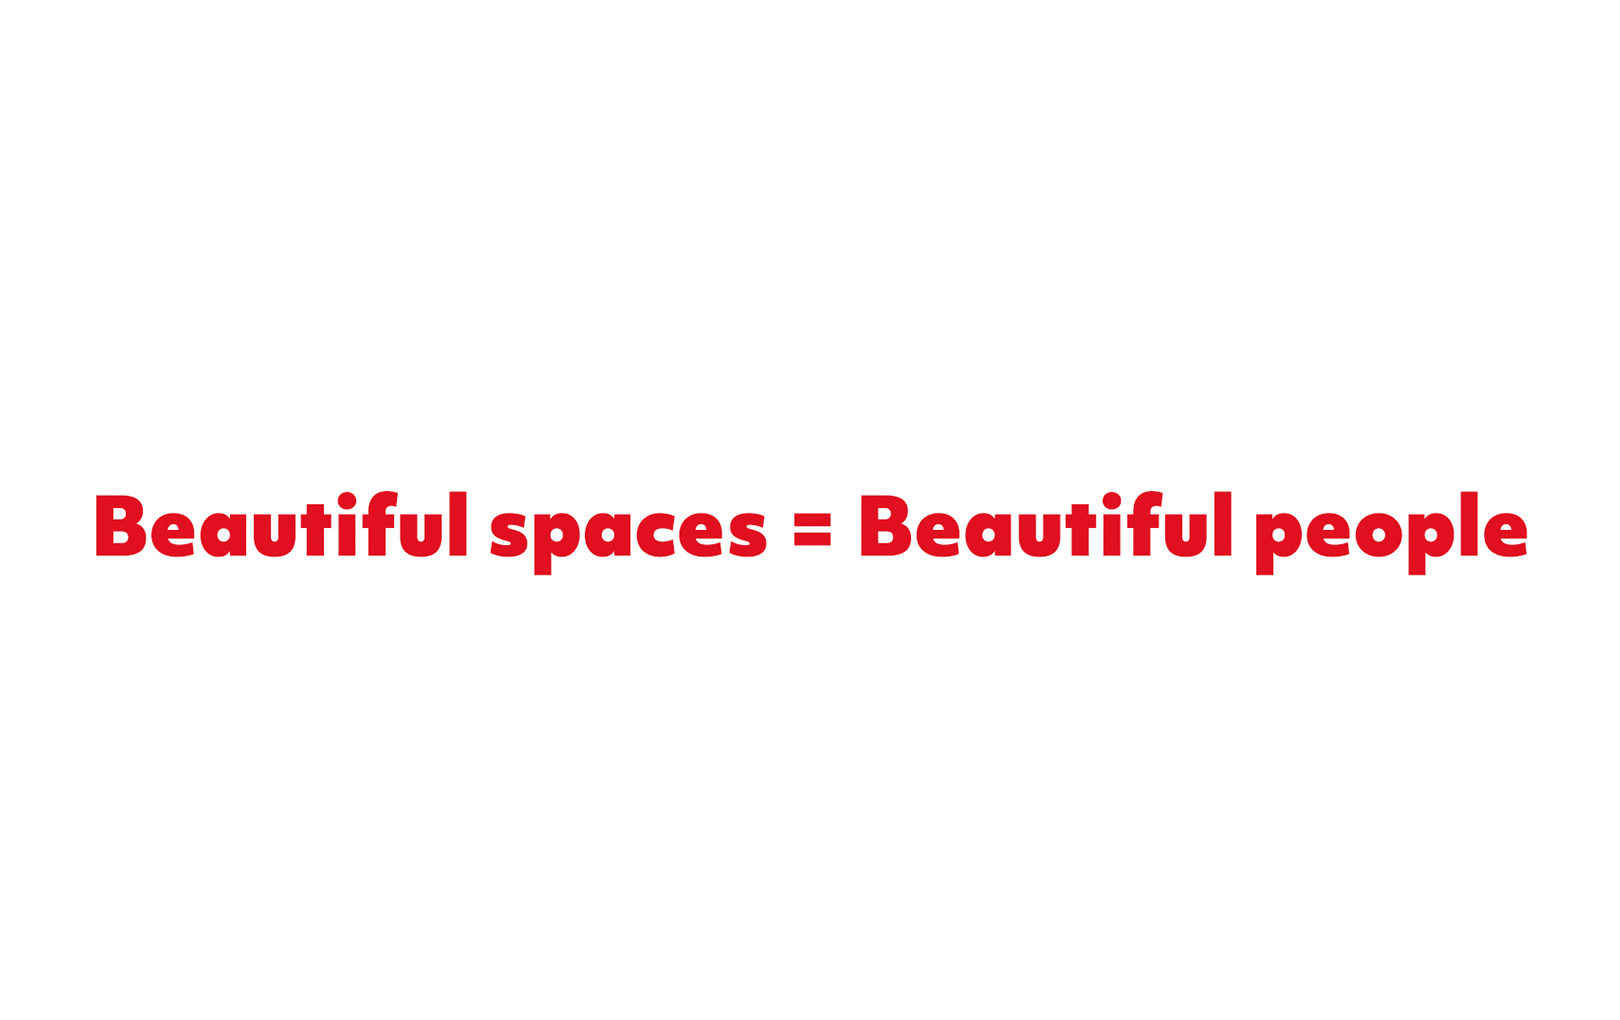 Beautiful spaces = Beautiful people - Piquant Media, Limerick City